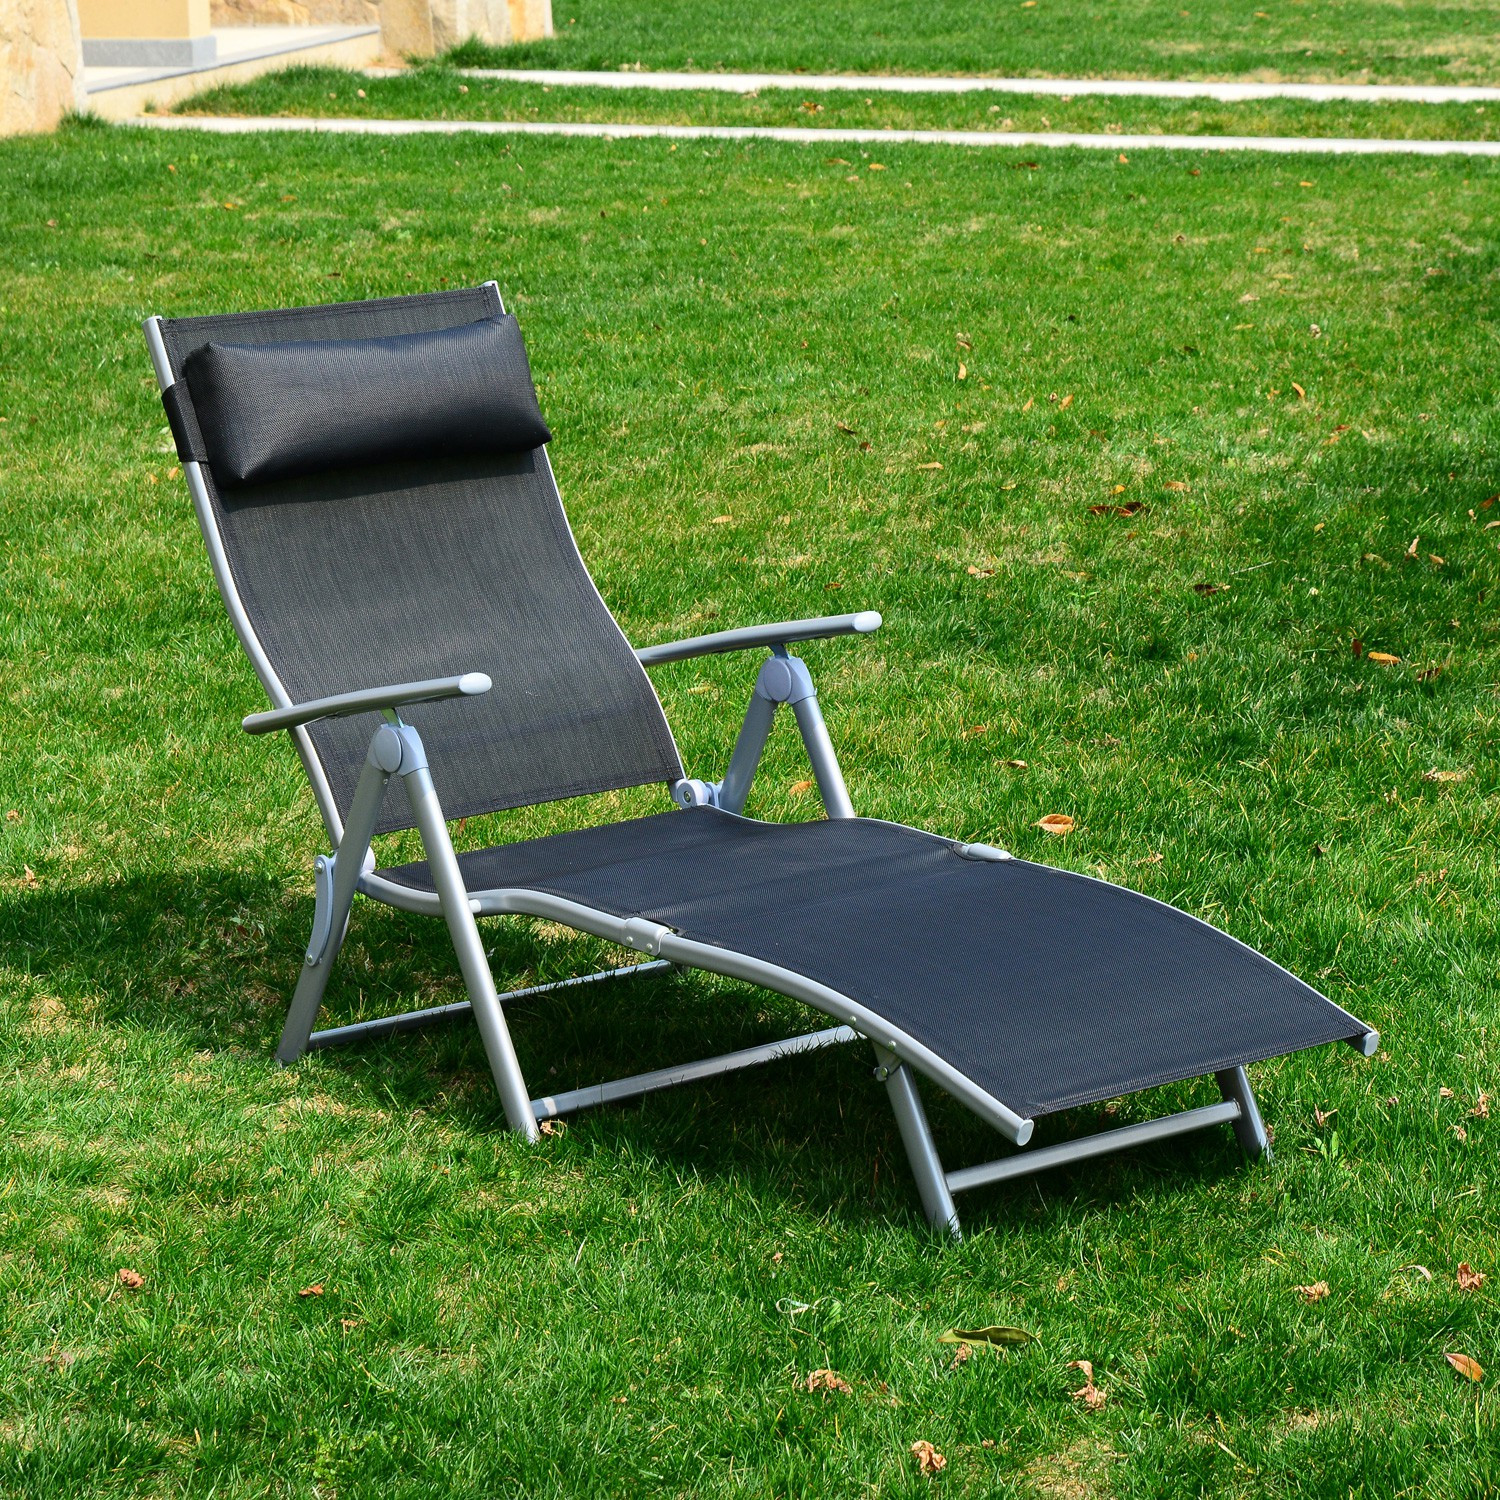 Best ideas about Outdoor Lounge Chairs . Save or Pin Lounge Chair Zero Gravity Folding Chaise Beach Portable Now.